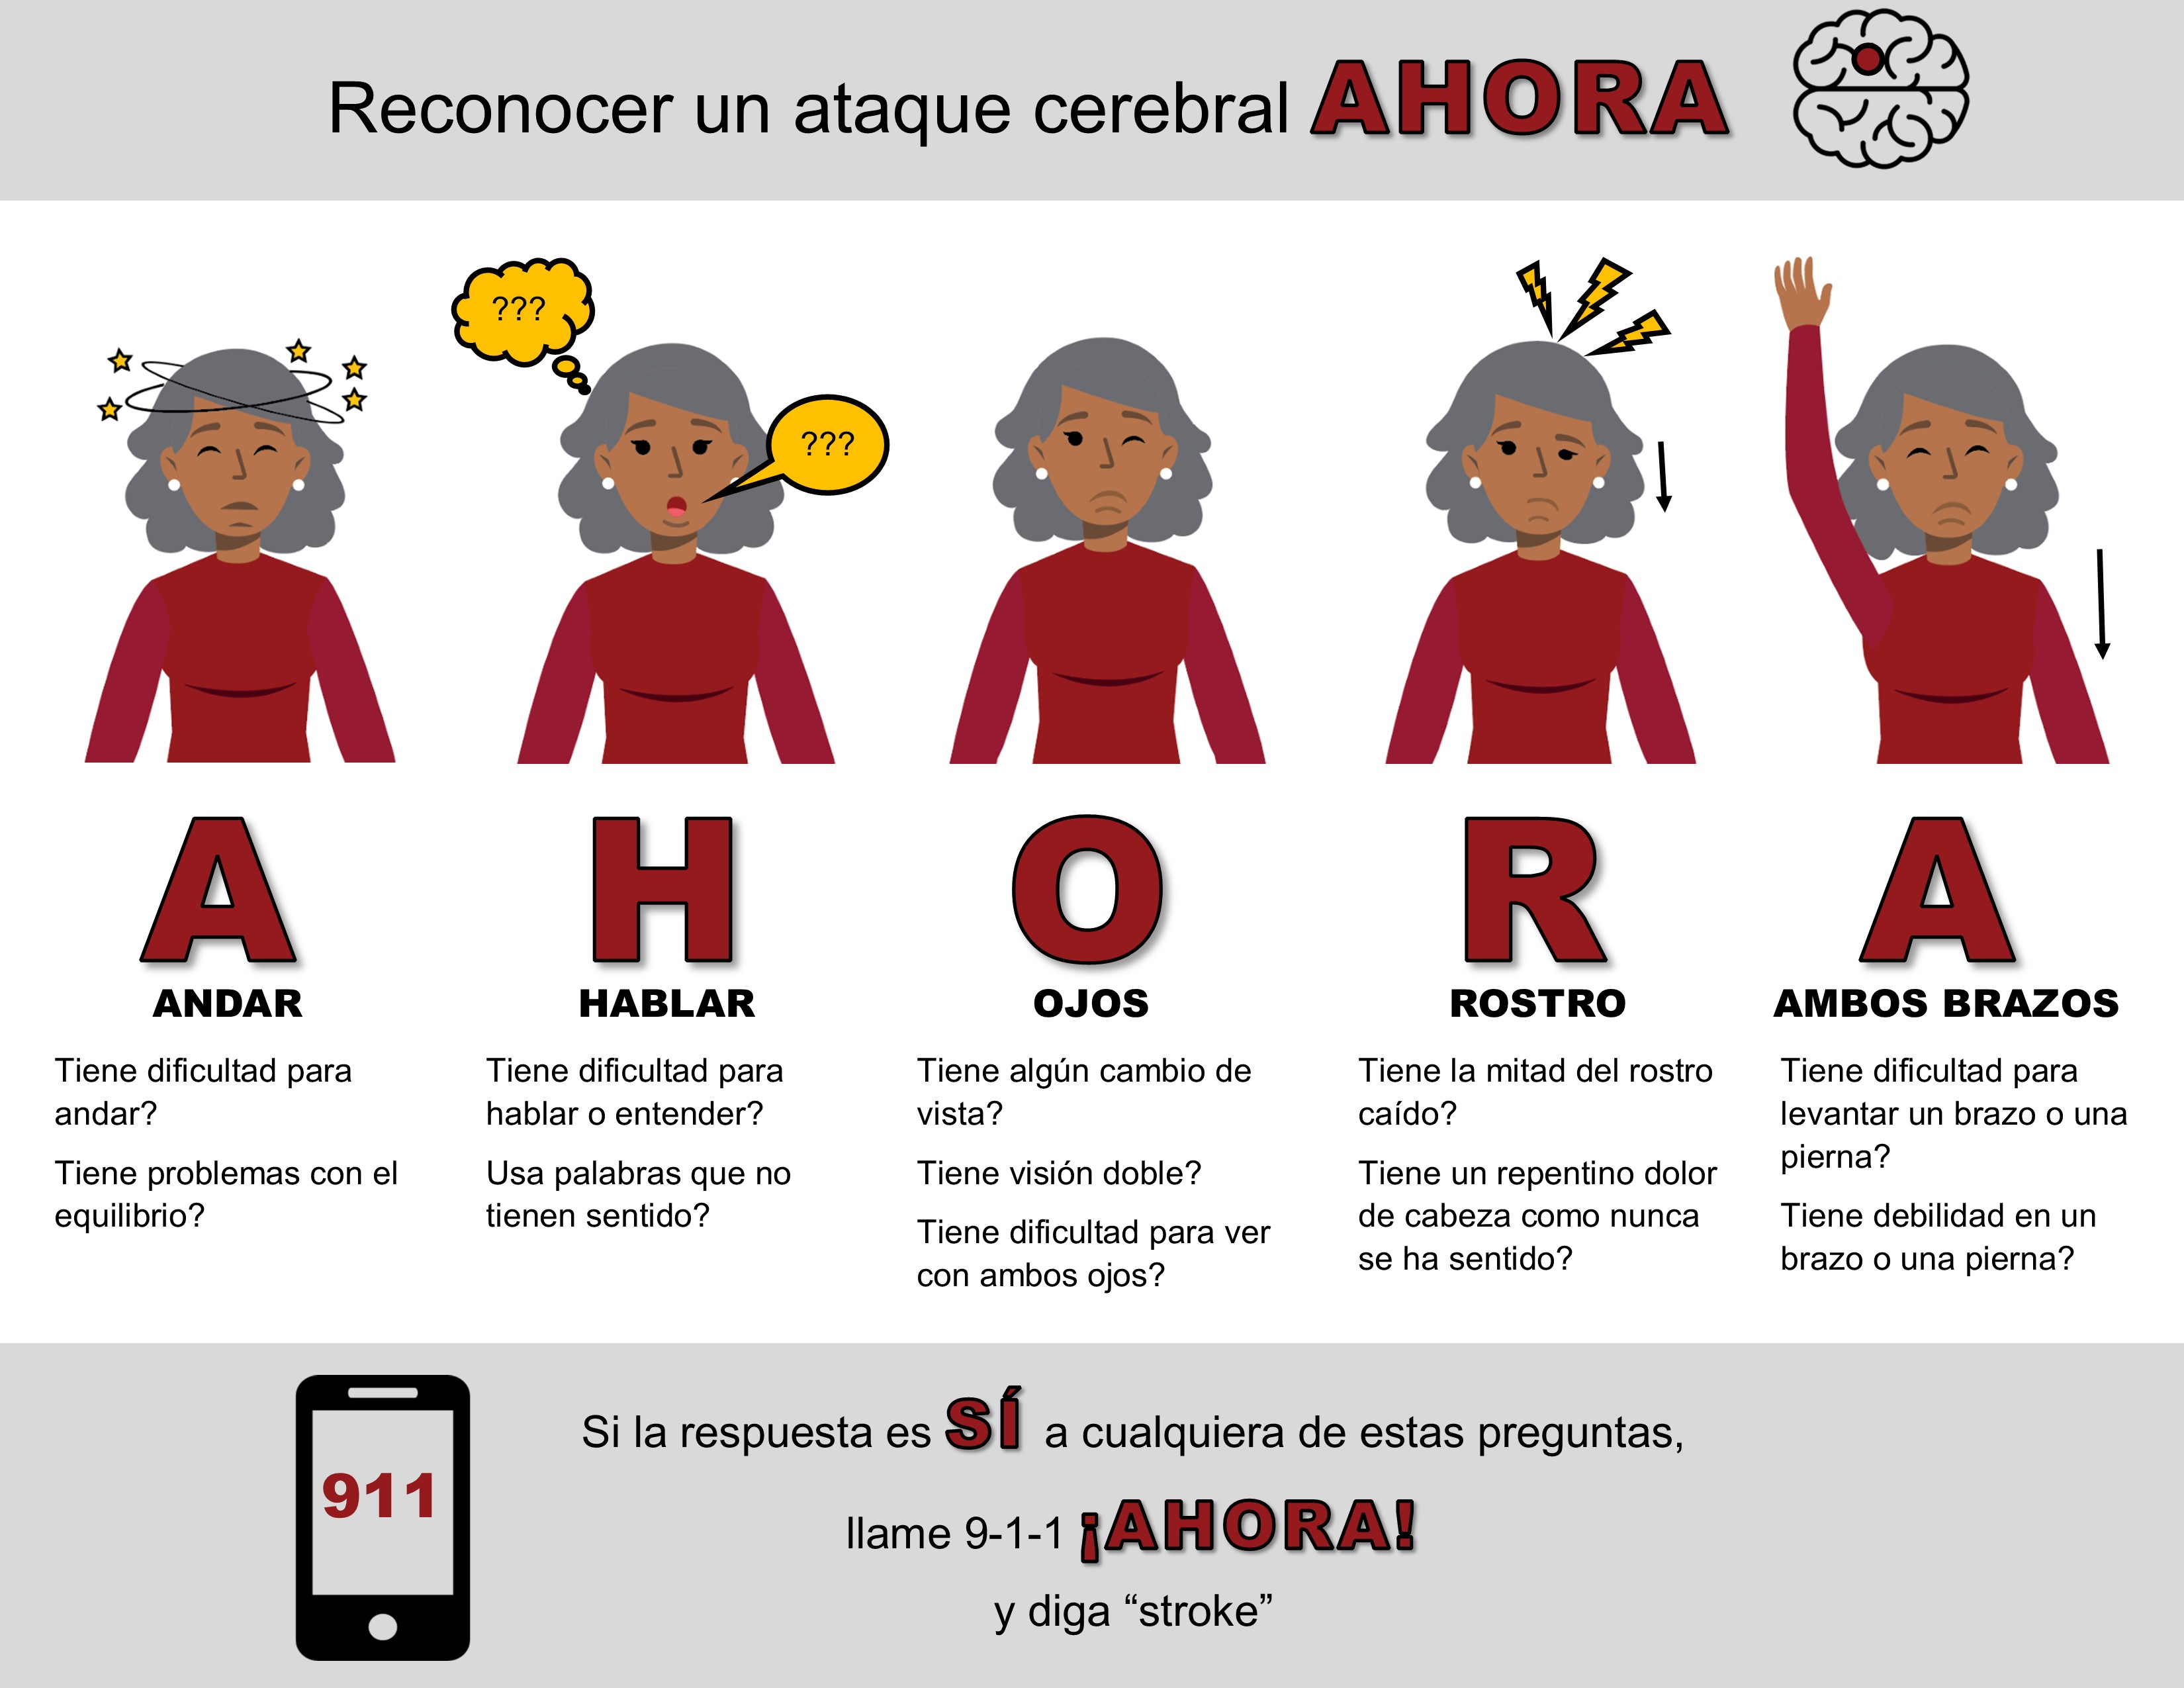 A graphic of the AHORA pneumonic device to help spanish speakers recognize a stroke.